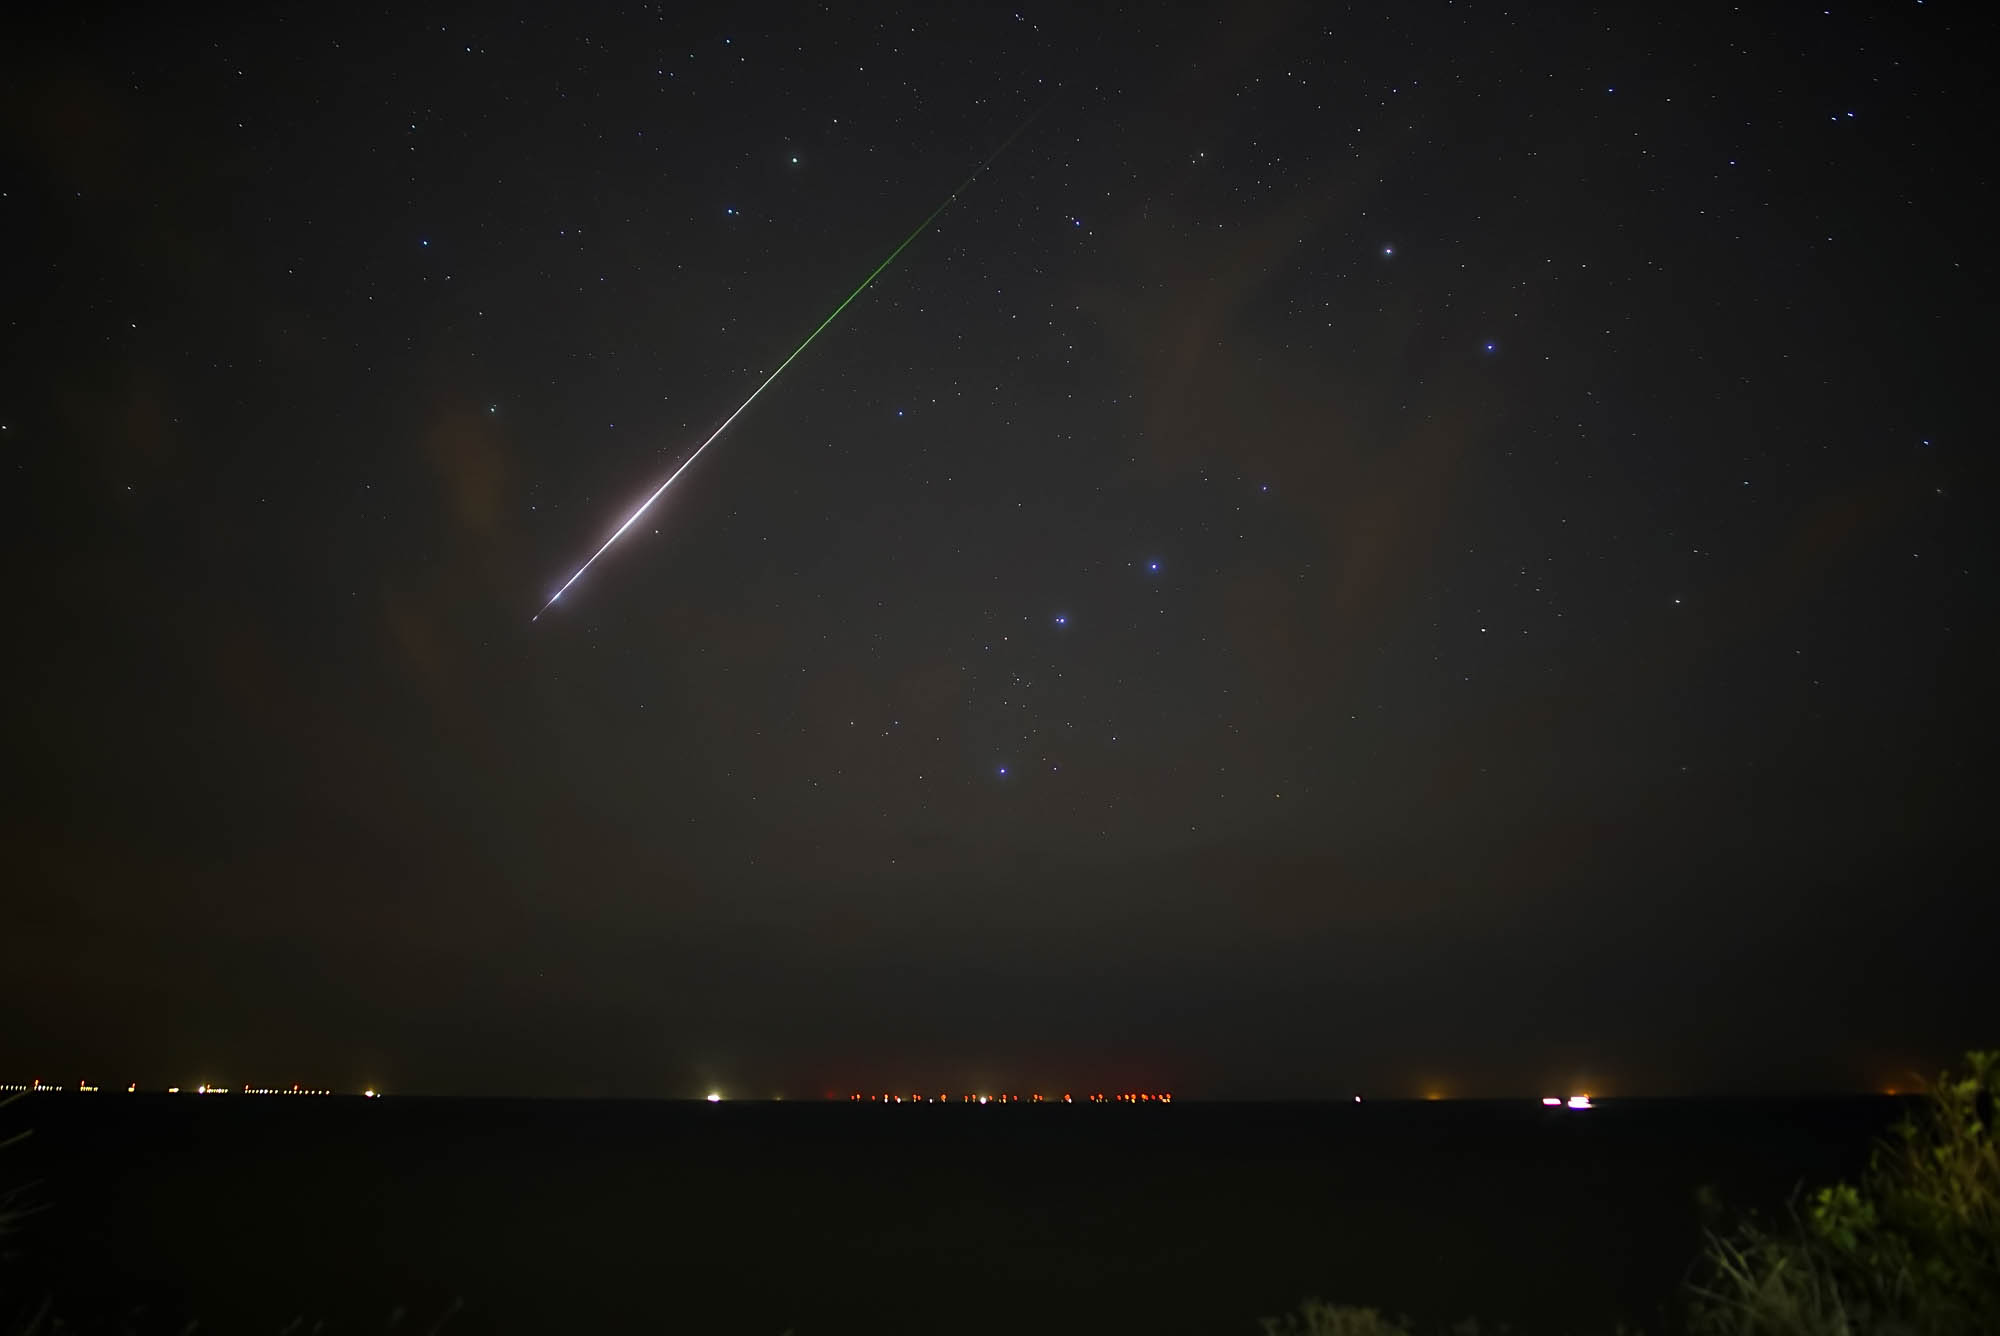 A large Draconid meteor falls from the skies of Norfolk. Draconids showers come from the parent comet 21P/Giacobini-Zinner and peak during the month of October.